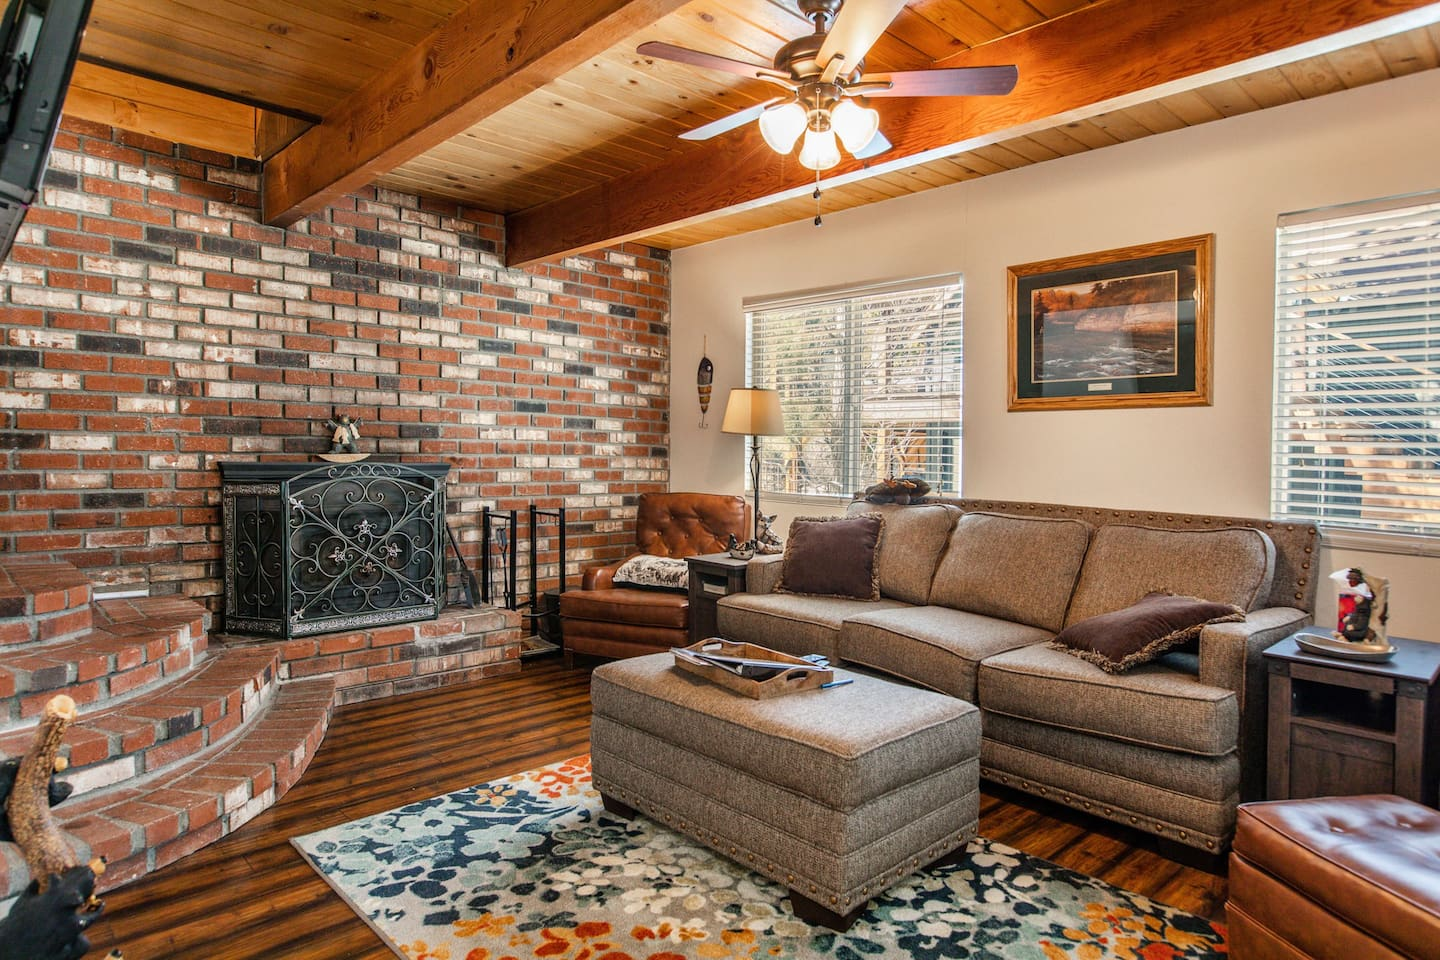 Welcome to Chateau Sasquatch! Enjoy the rustic & cozy downstairs living room with wood burning fireplace, sofa, oversized chair, ceiling fan, & TV (Netflix, Amazon Firestick, Sling).